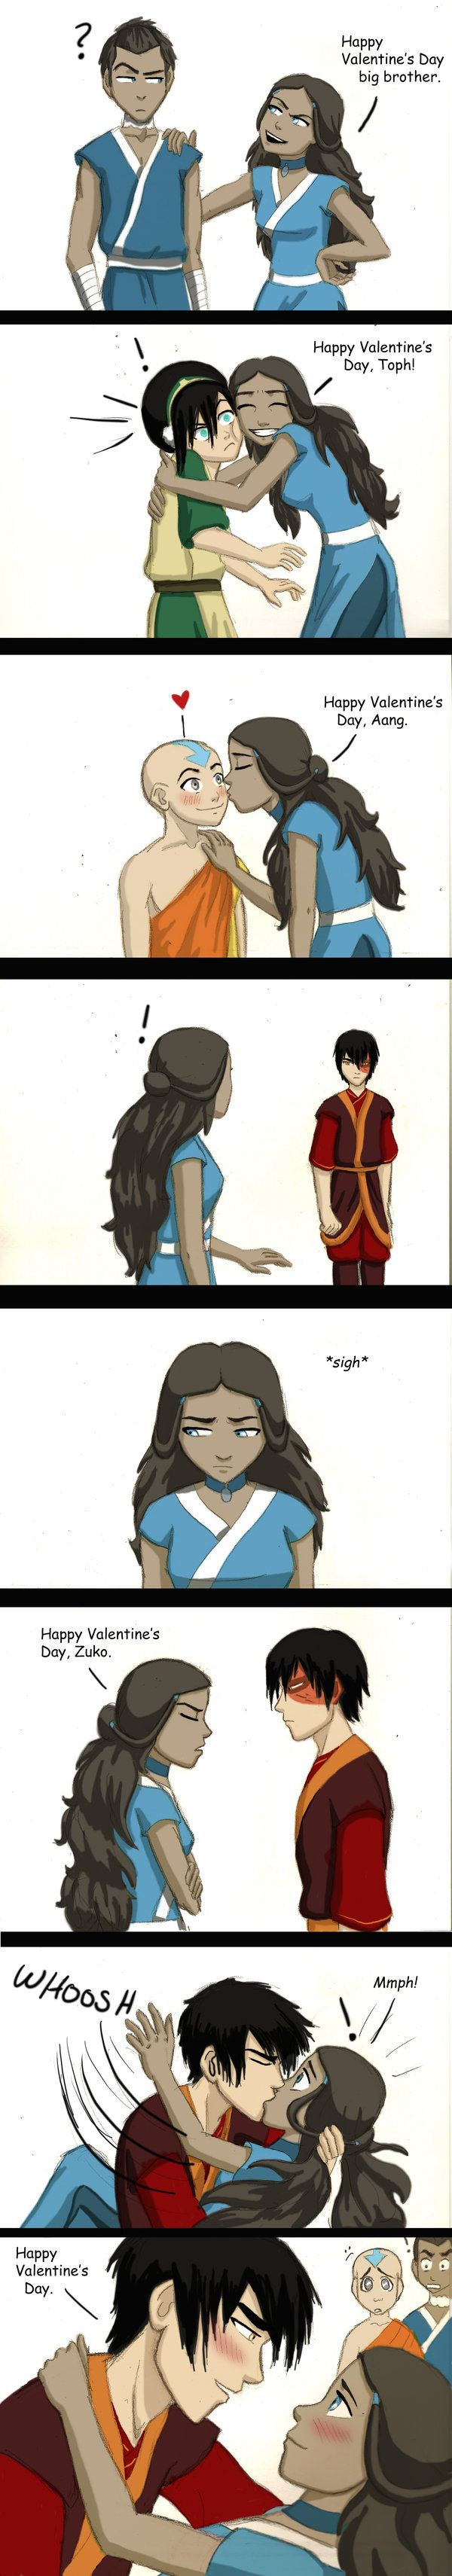 Zutara- Valentine's Day by ~GreenifyME on deviantART. Repinning just to piss a certain person off. She knows who she is...